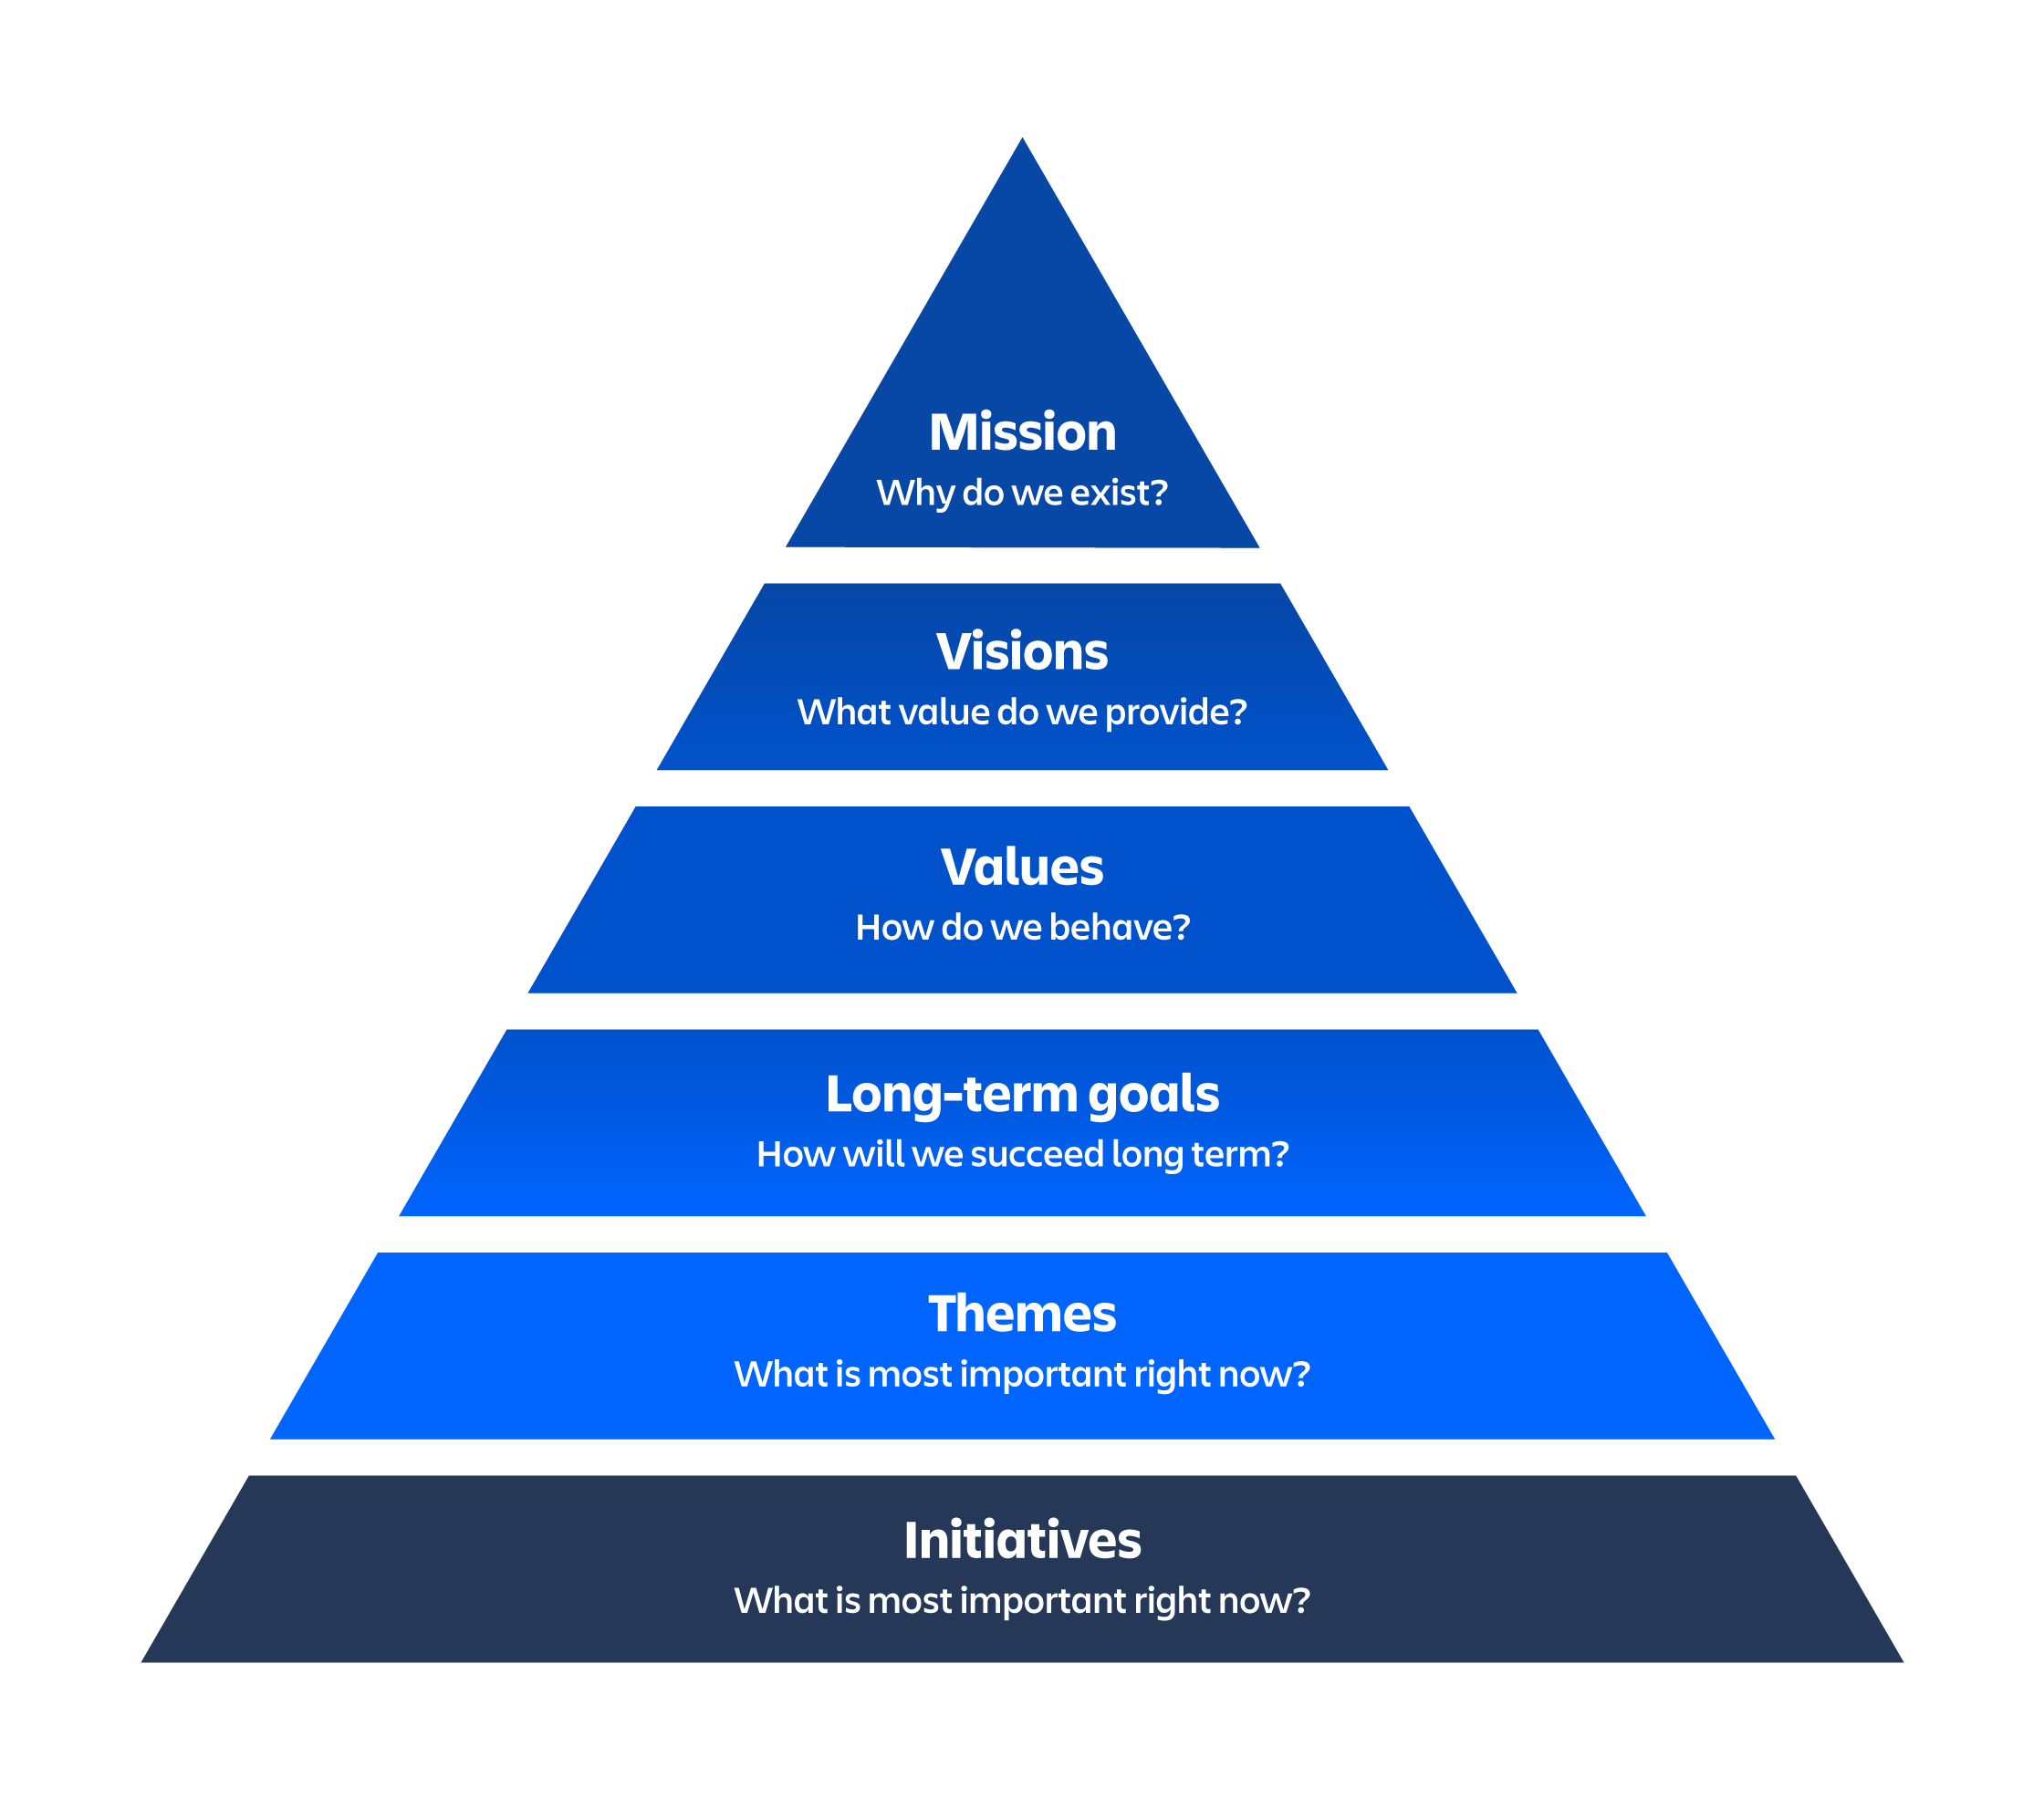 Lean portfolio management pyramid with mission at the top and initiatives at the base